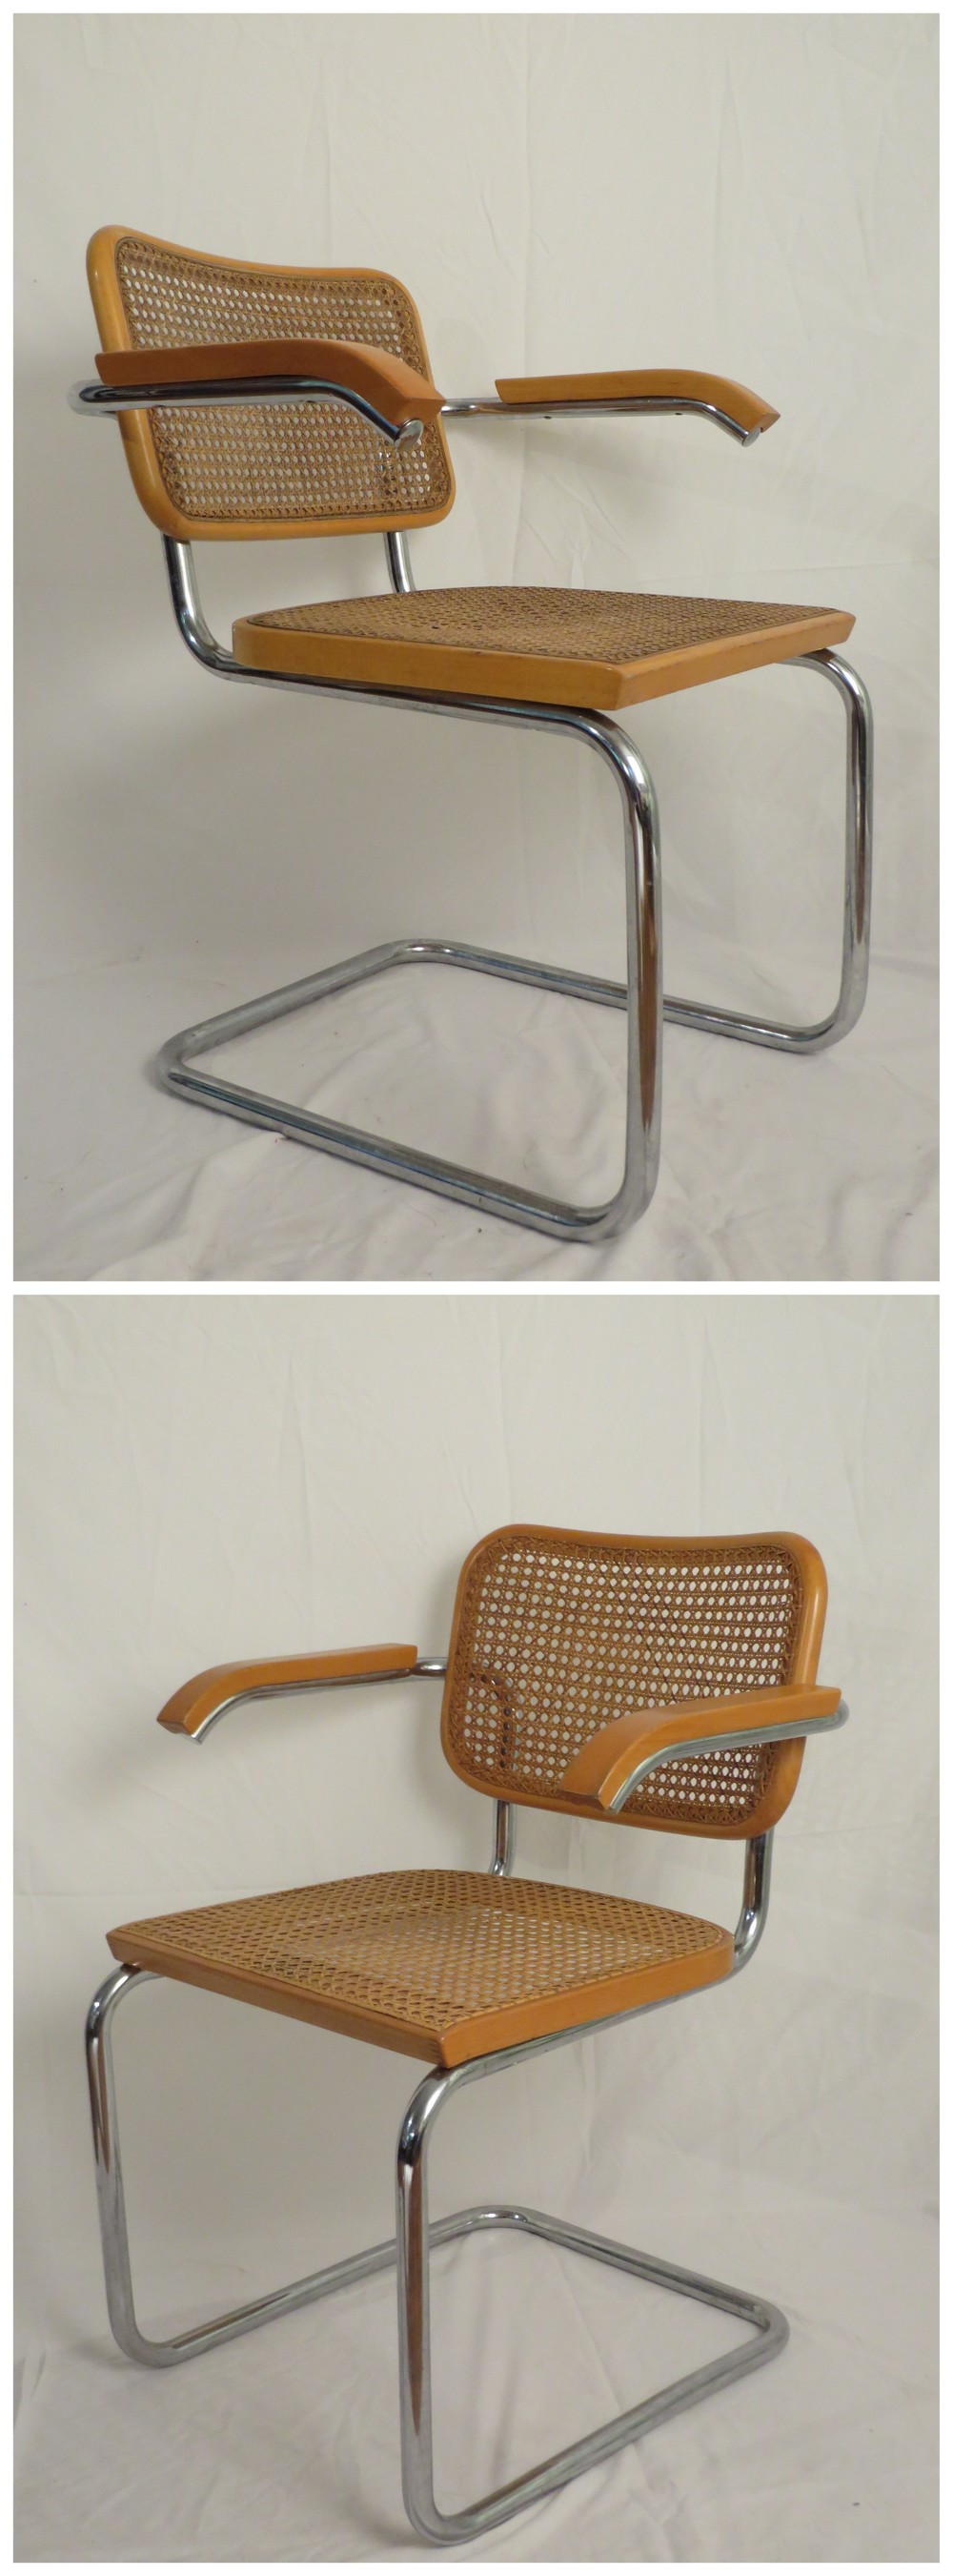 One of these was designed by Marcel Breuer & produced by Knoll. The other is a reproduction.